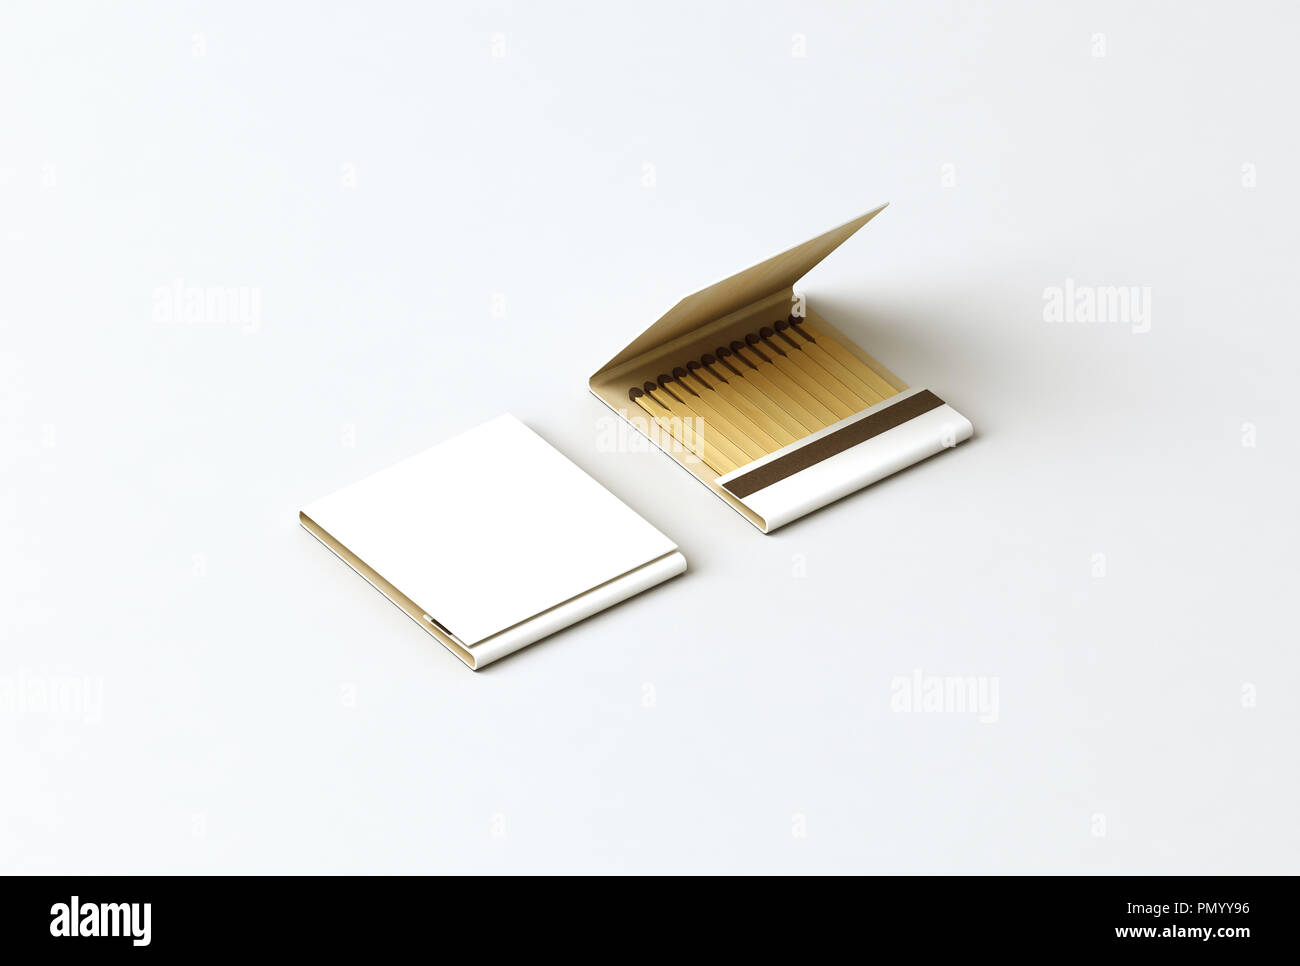 Blank promo matches book mock up, clipping path, 3d rendering. Empty paper match box packaging mockup. Matchbook case top side view ready for logo des - Stock Image